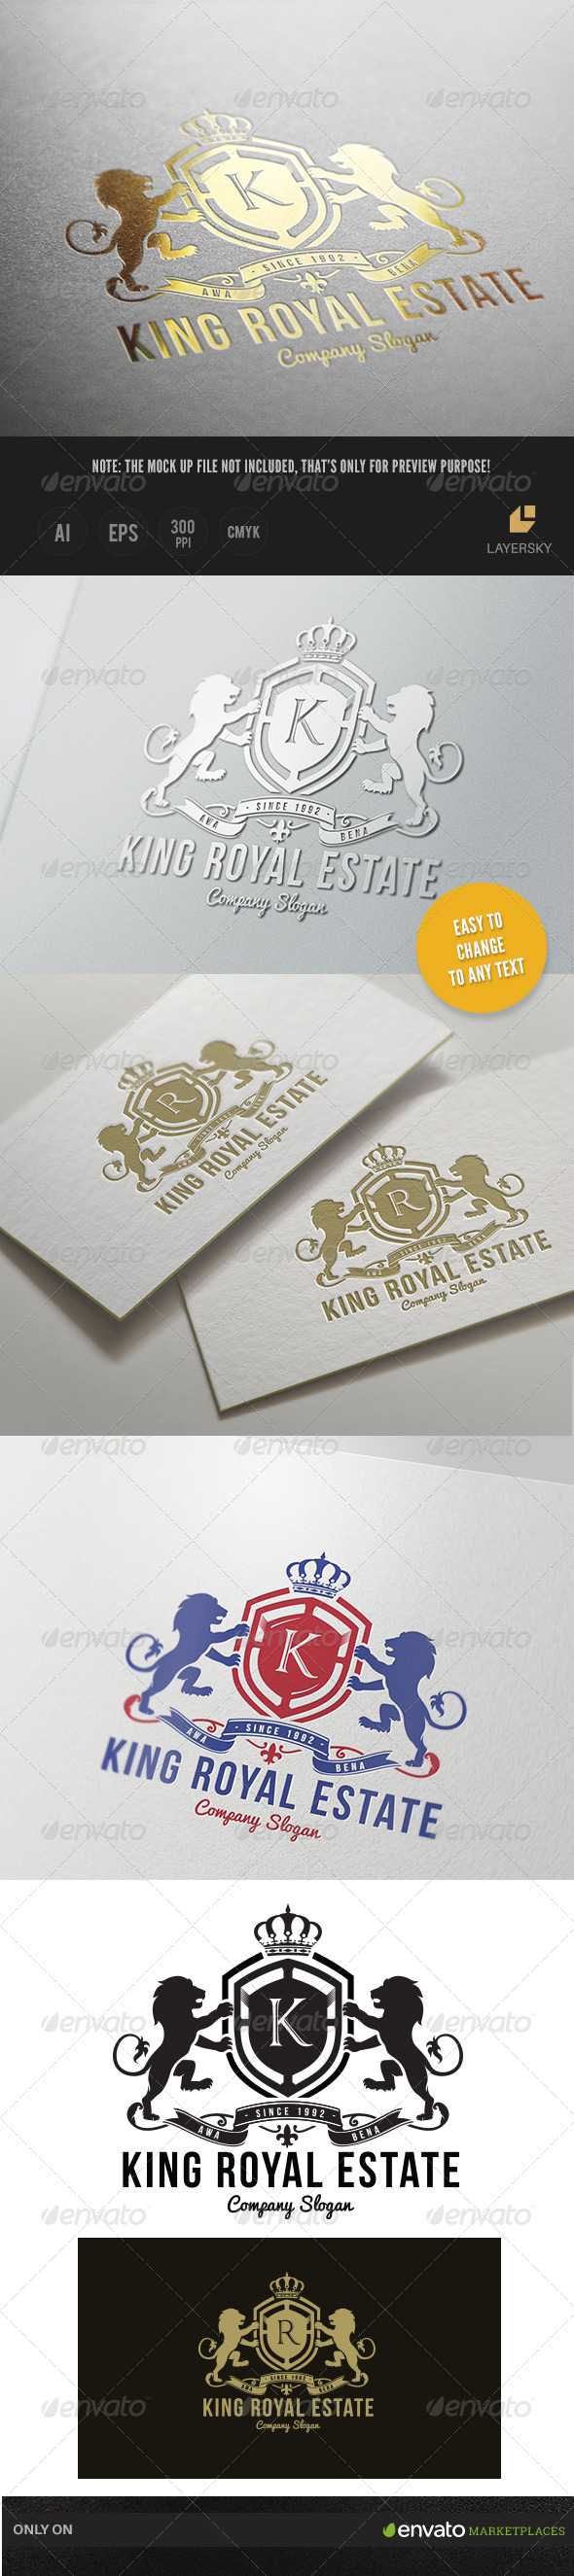 GraphicRiver King Royal Estate II 8057558